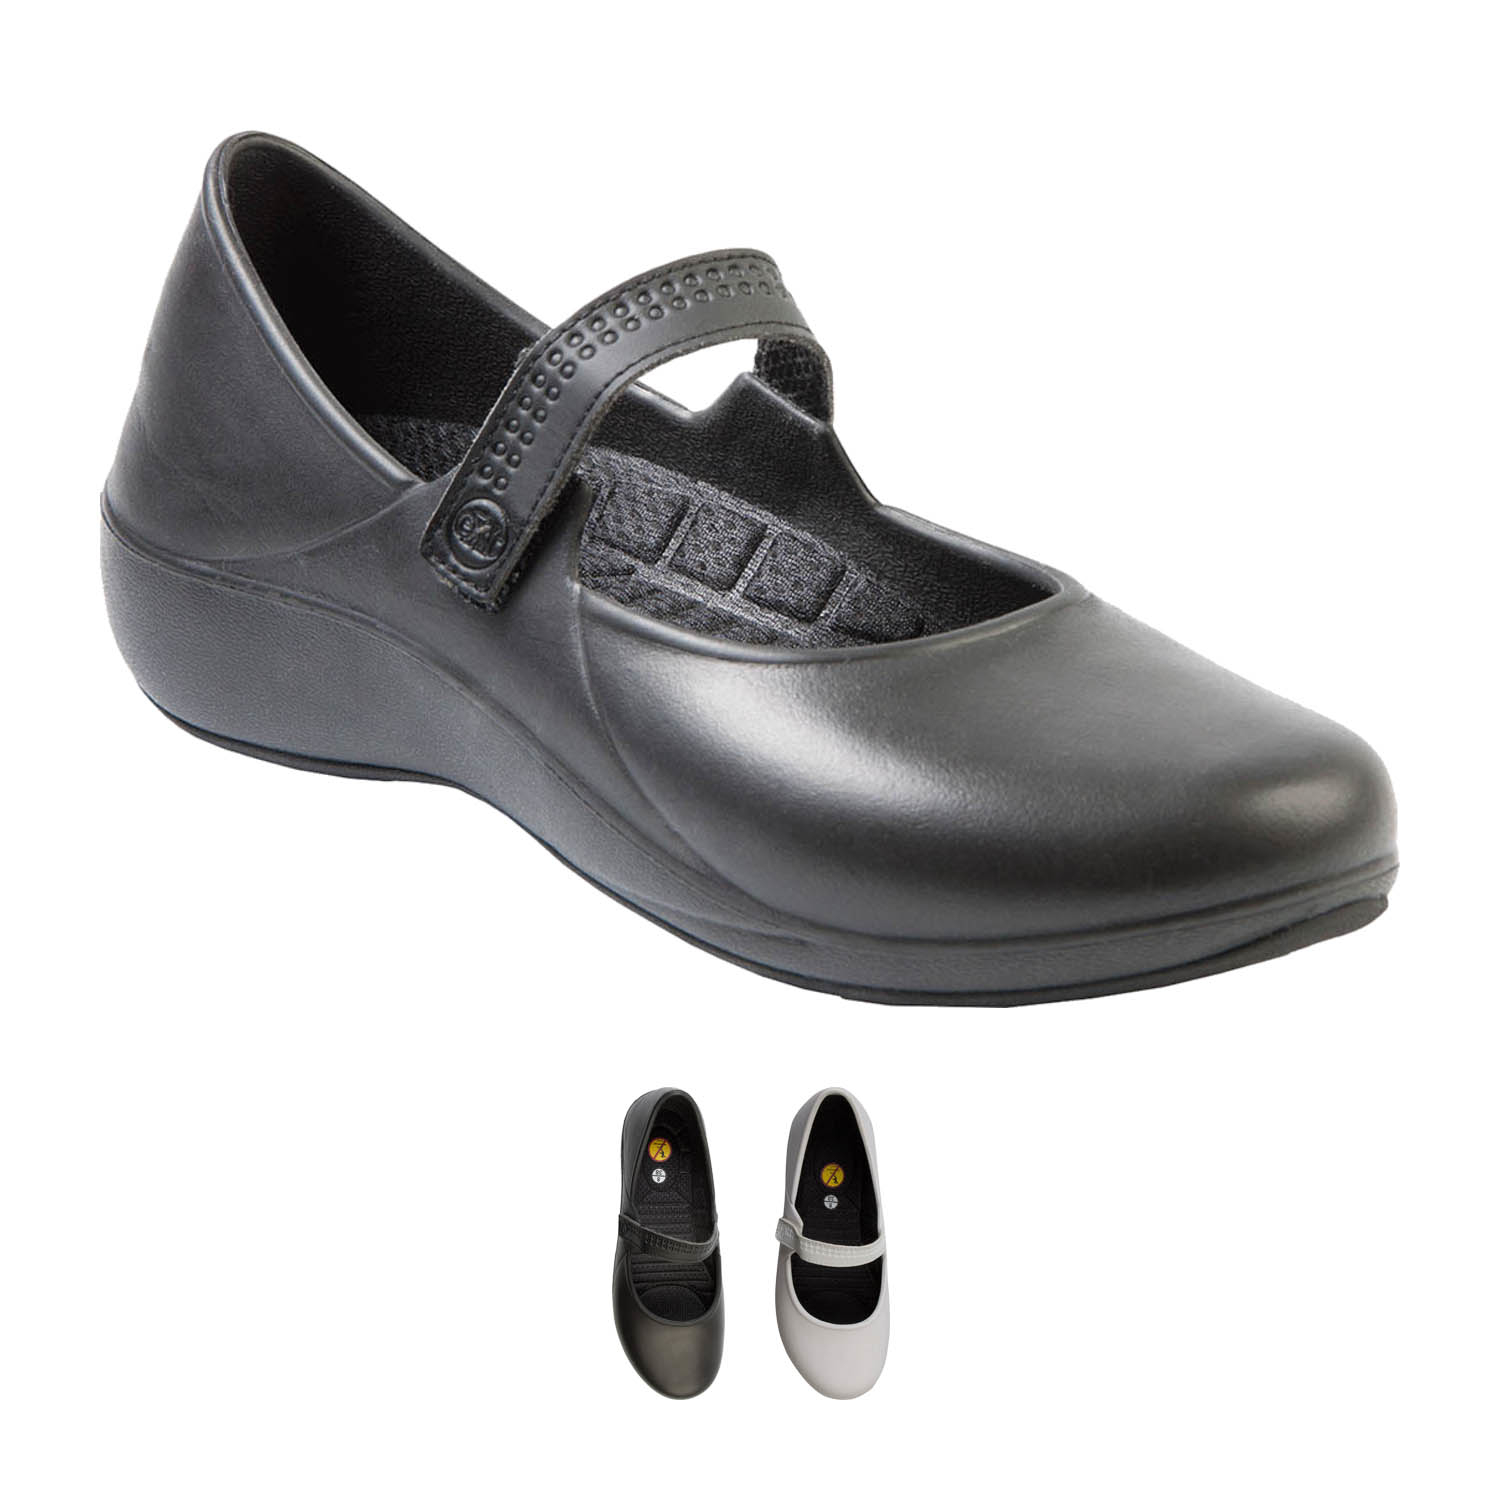 Women's Extreme Mary Jane Work Shoes - black, 6 5881020a2a00e425280d5836